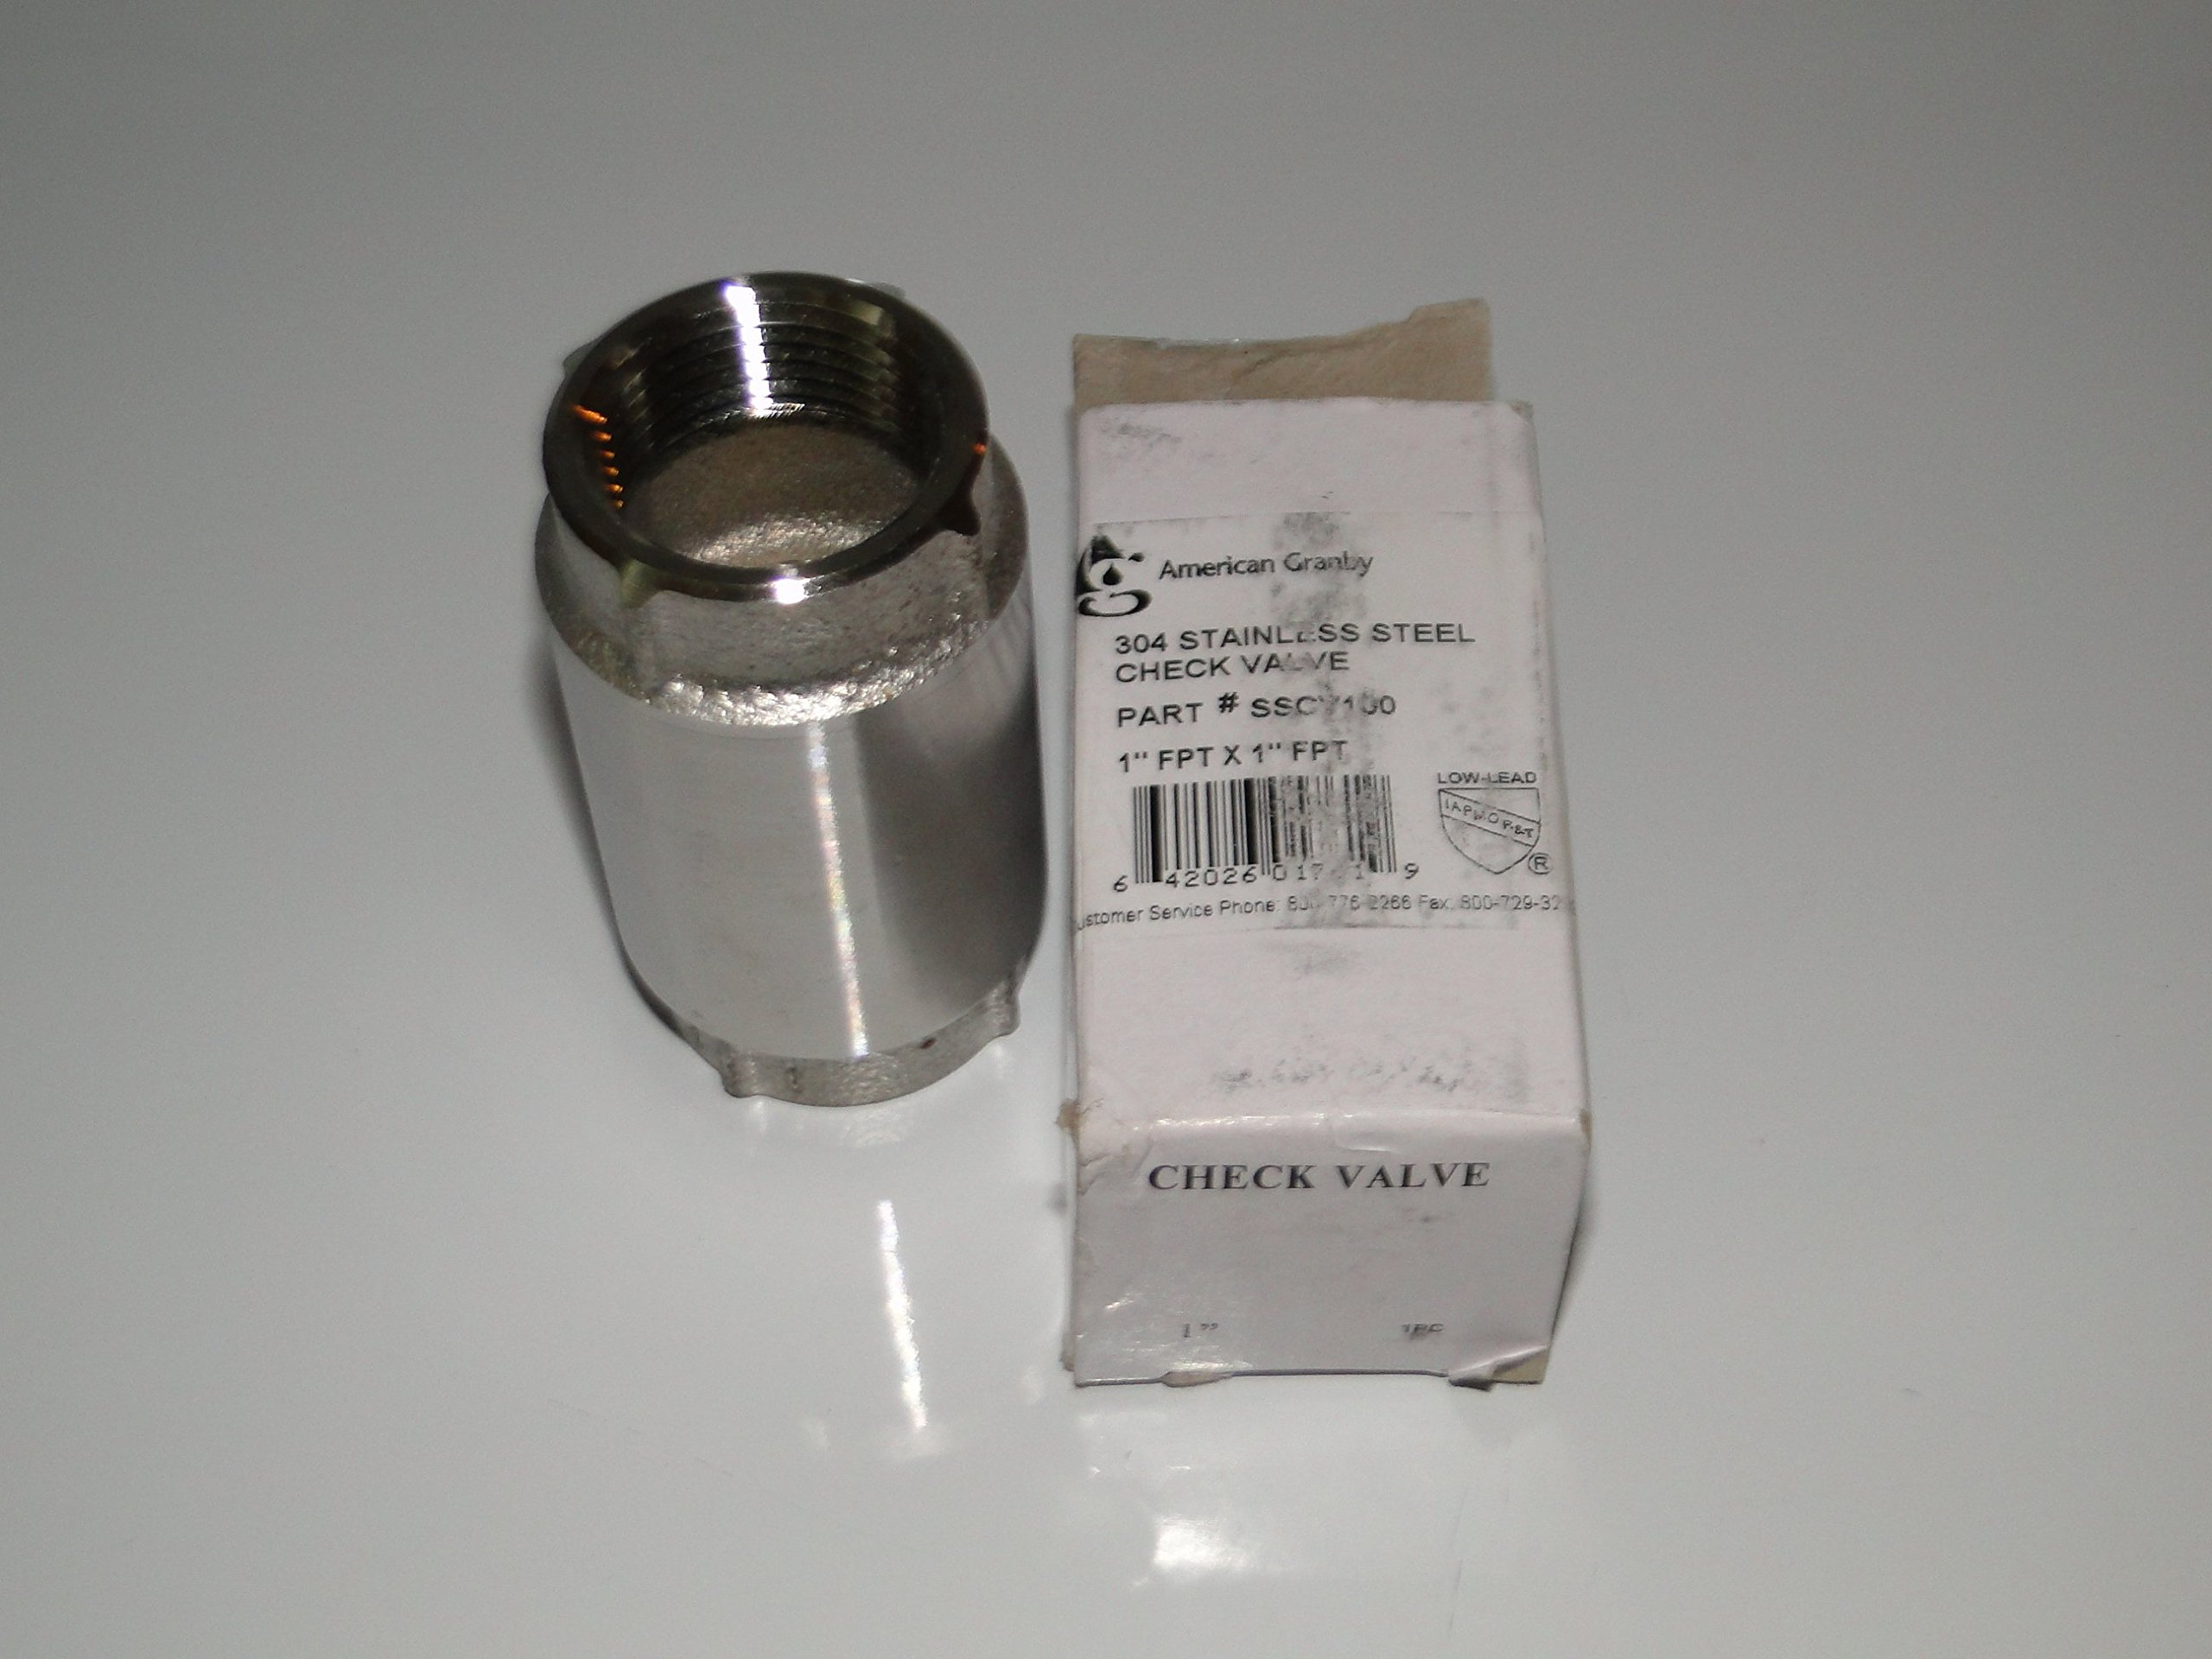 AMERICAN GRANBY HARVARD 1.25'' STAINLESS STEEL CHECK VALVE for WATER WELL PUMP Pressure TANK SSCV125